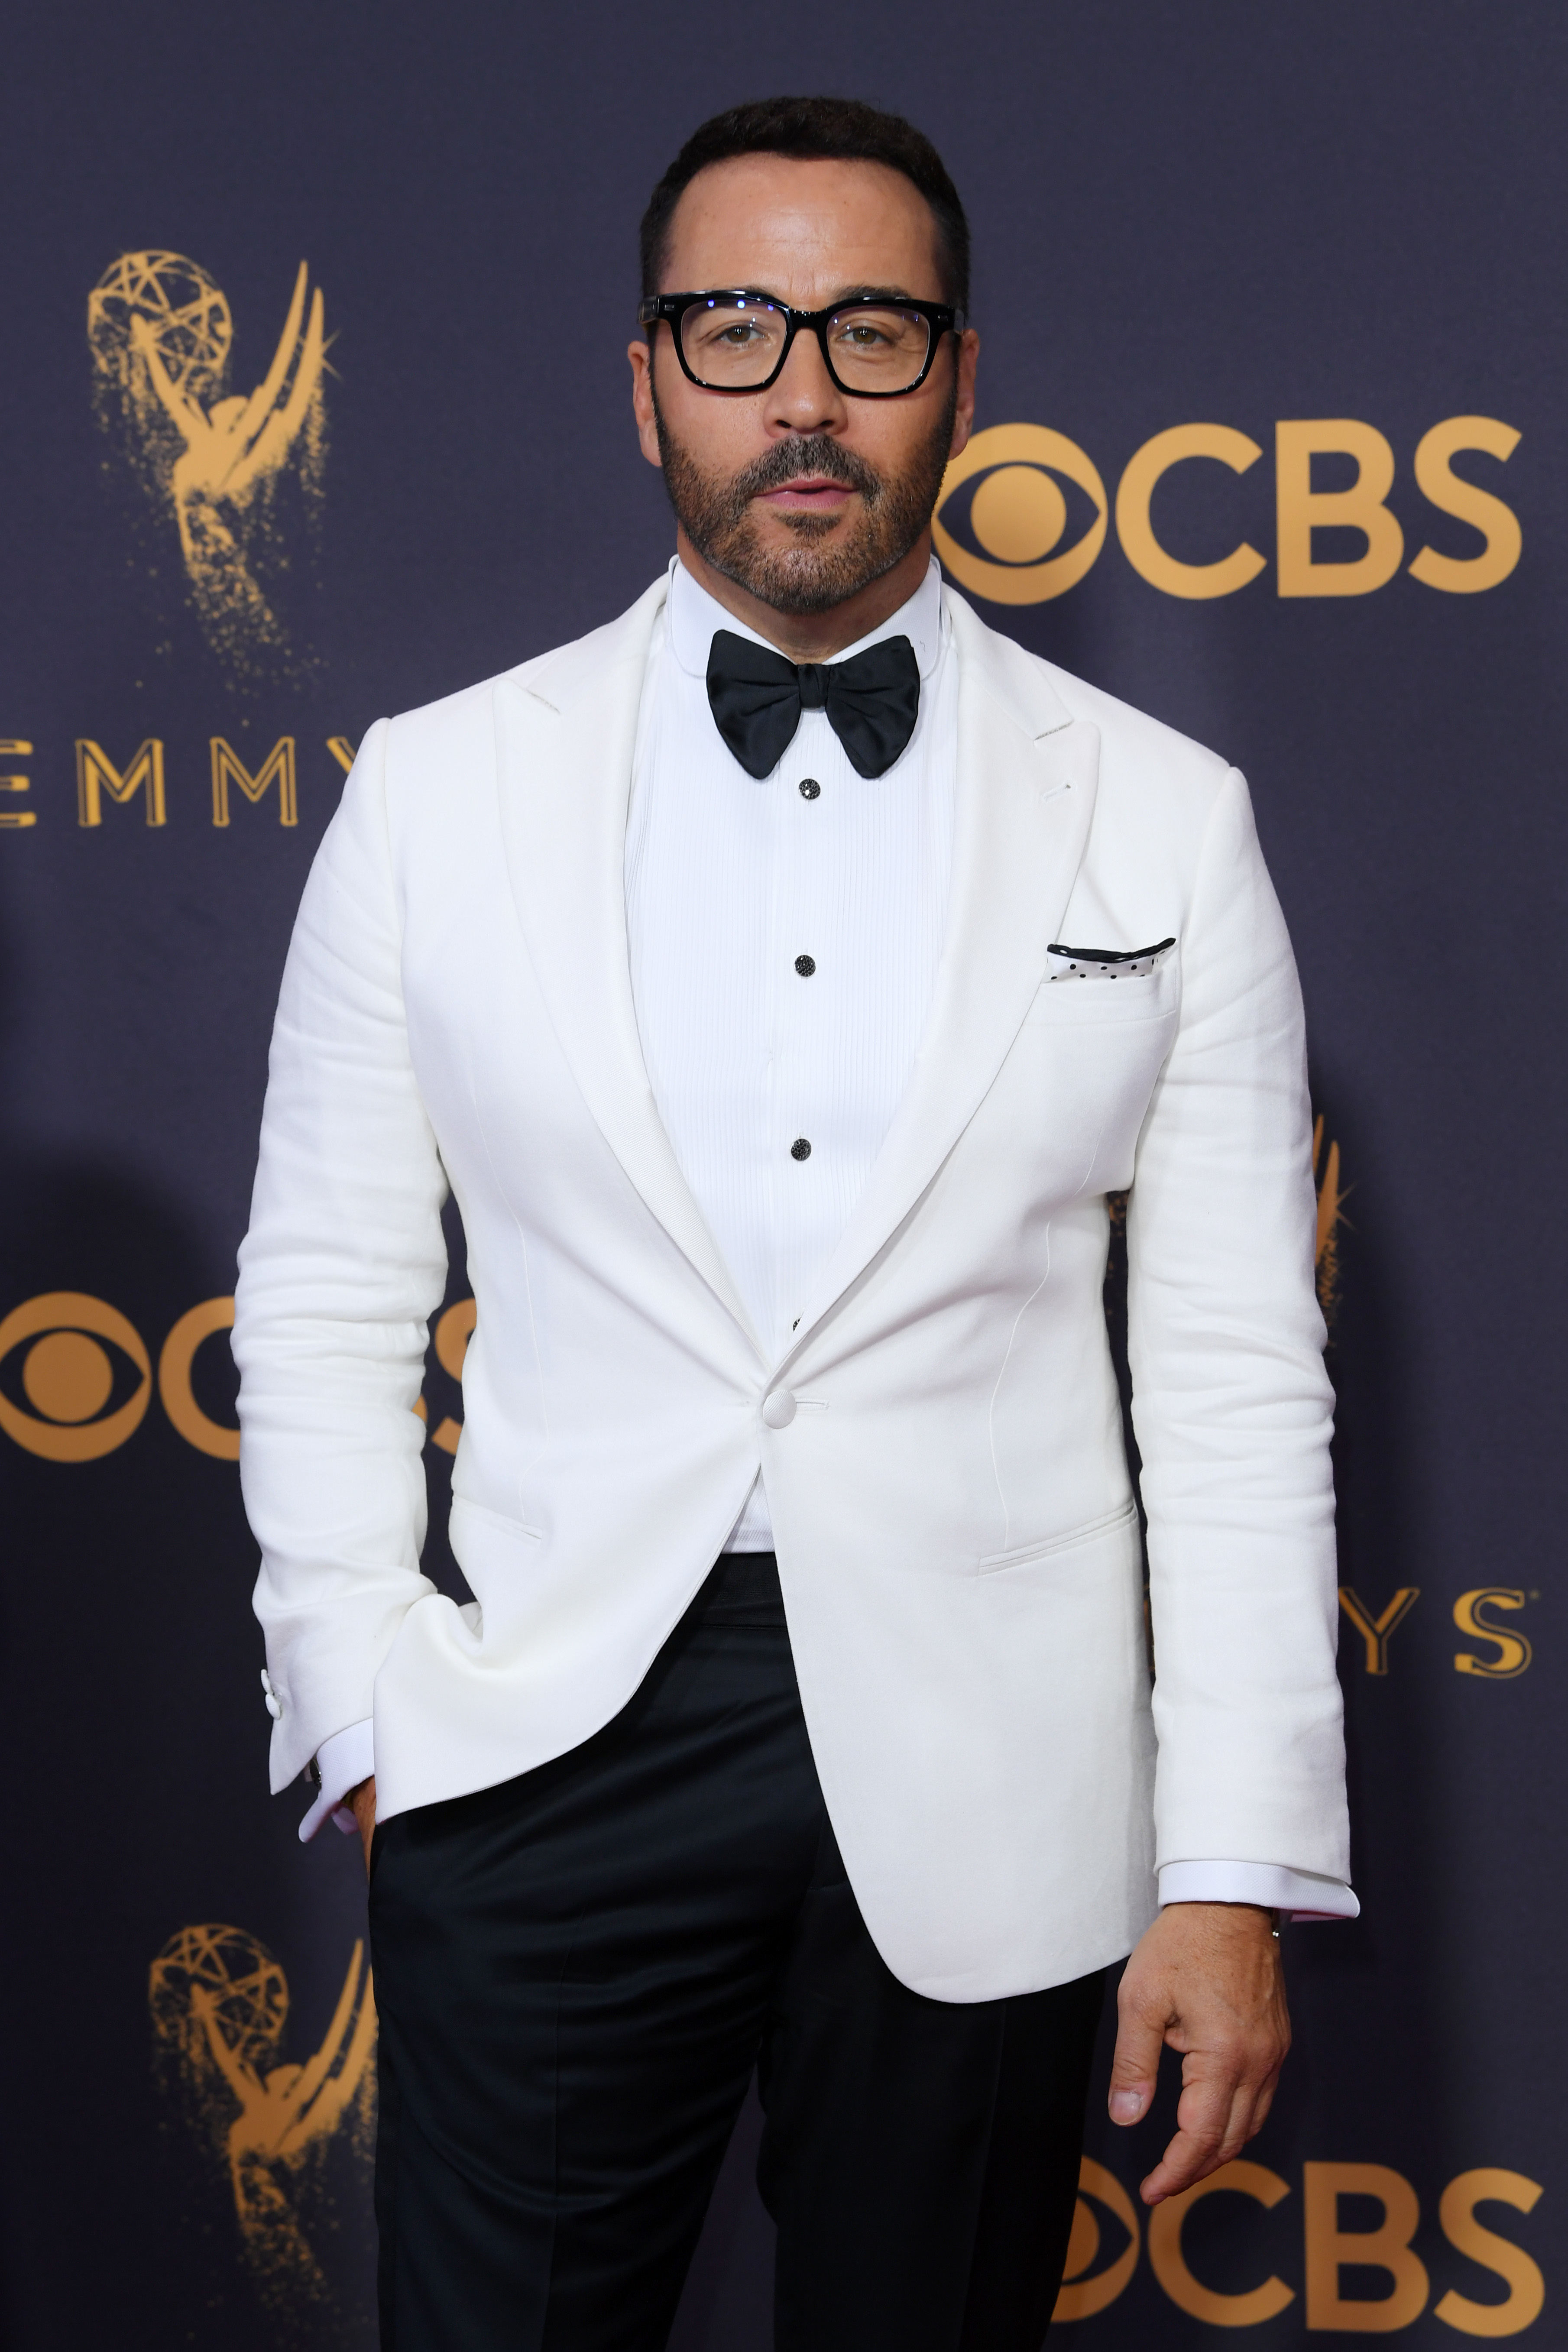 Jeremy Piven attends the 69th Annual Primetime Emmy Awards at the Microsoft Theater in Los Angeles on Sept. 17, 2017.